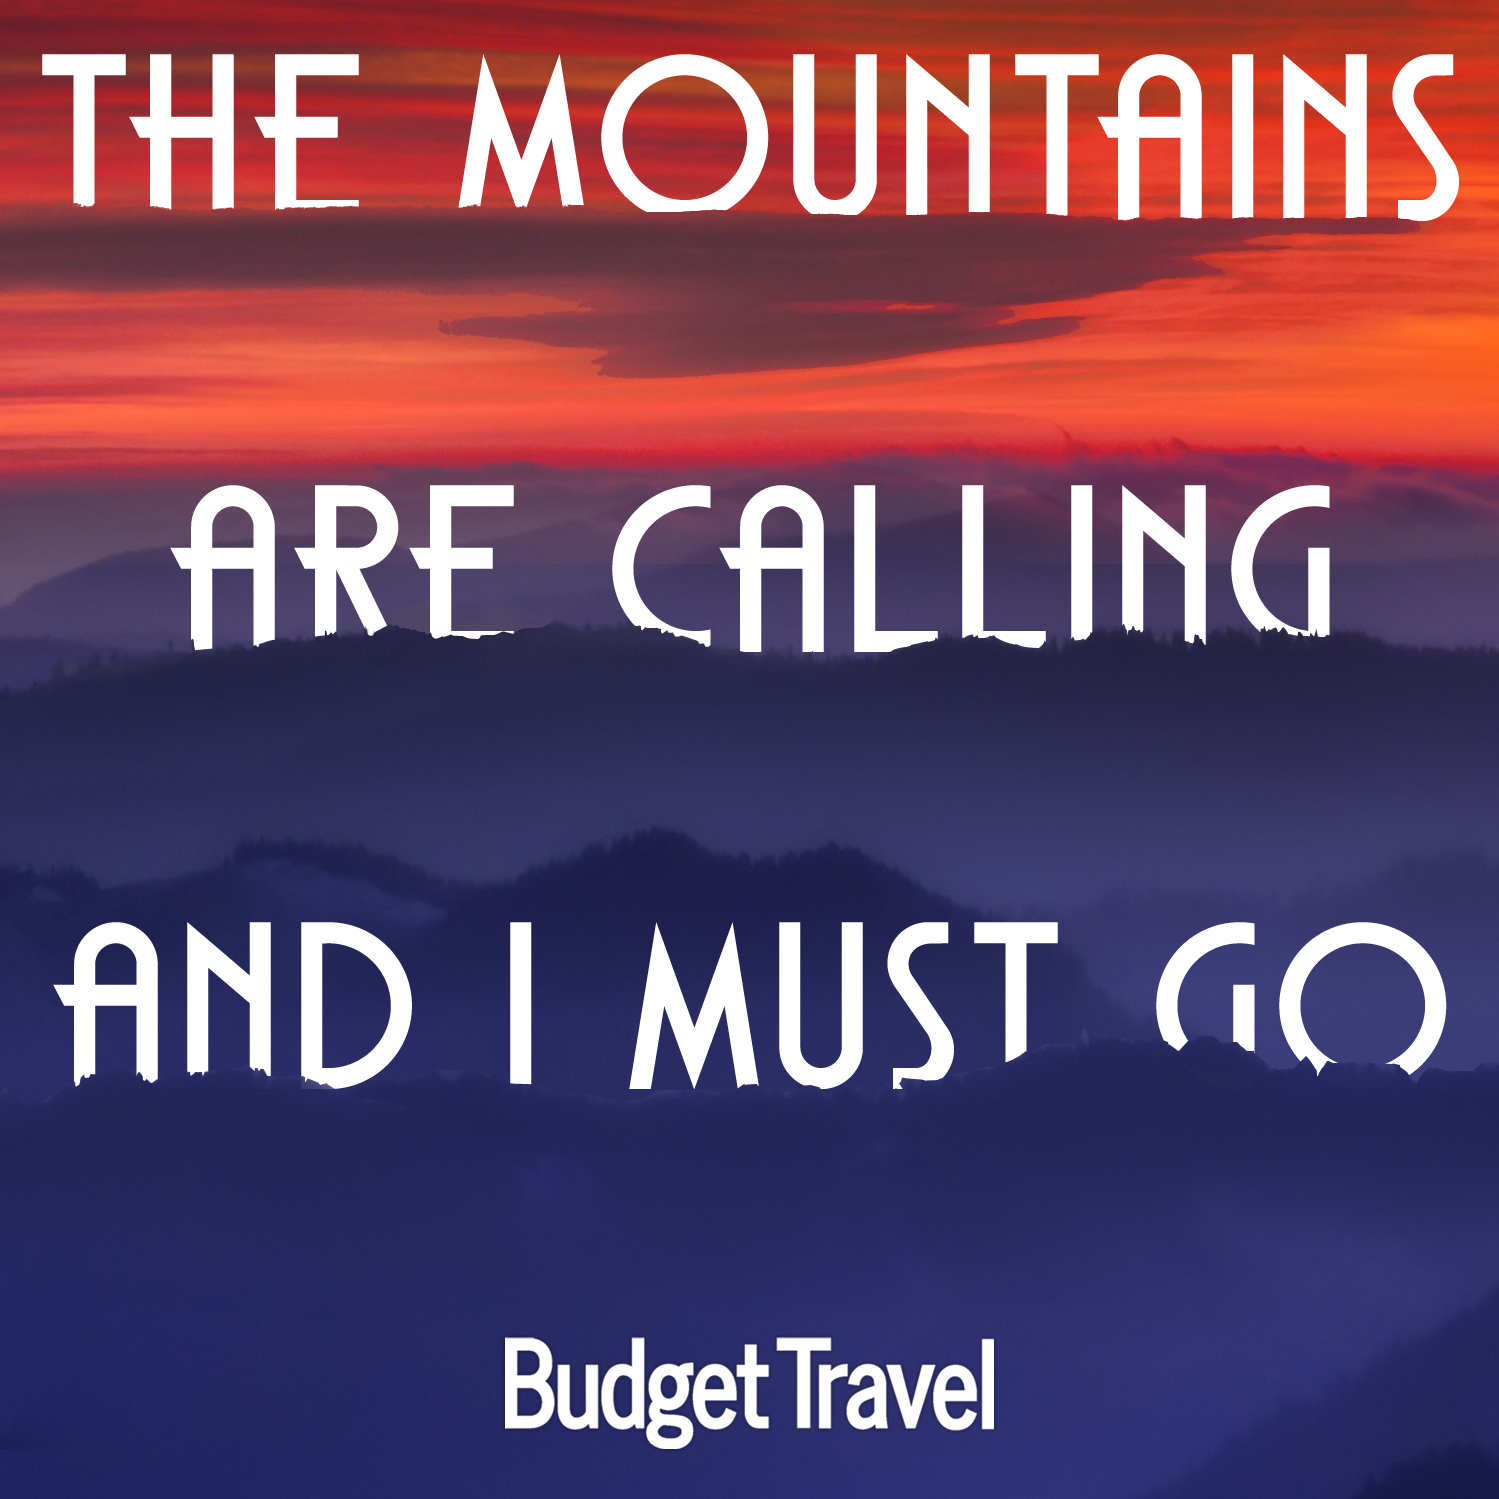 the-mountains-are-calling-travel-quote-472015-19134_original